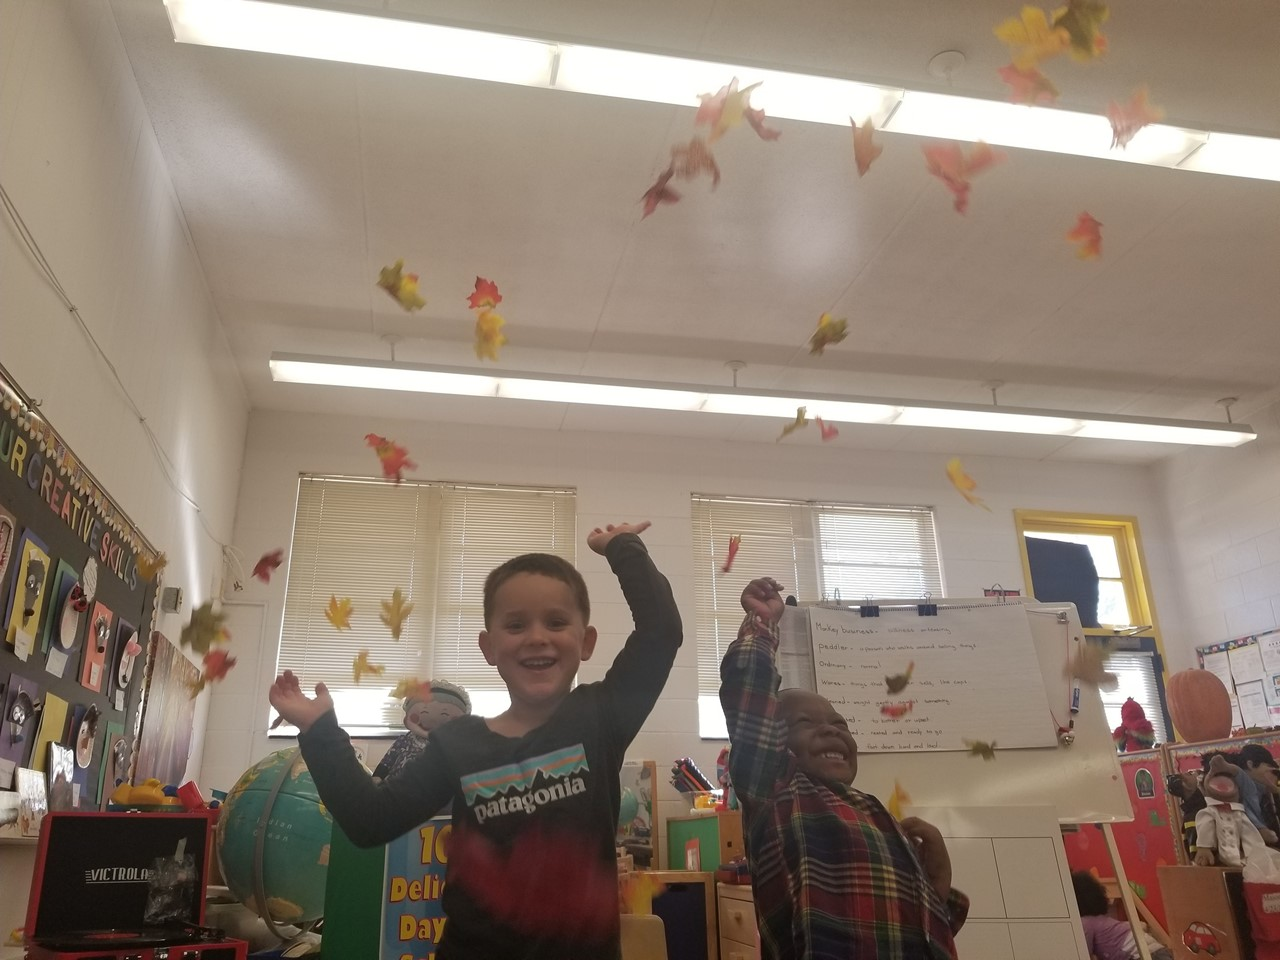 Learning about Fall, the leaves are falling!